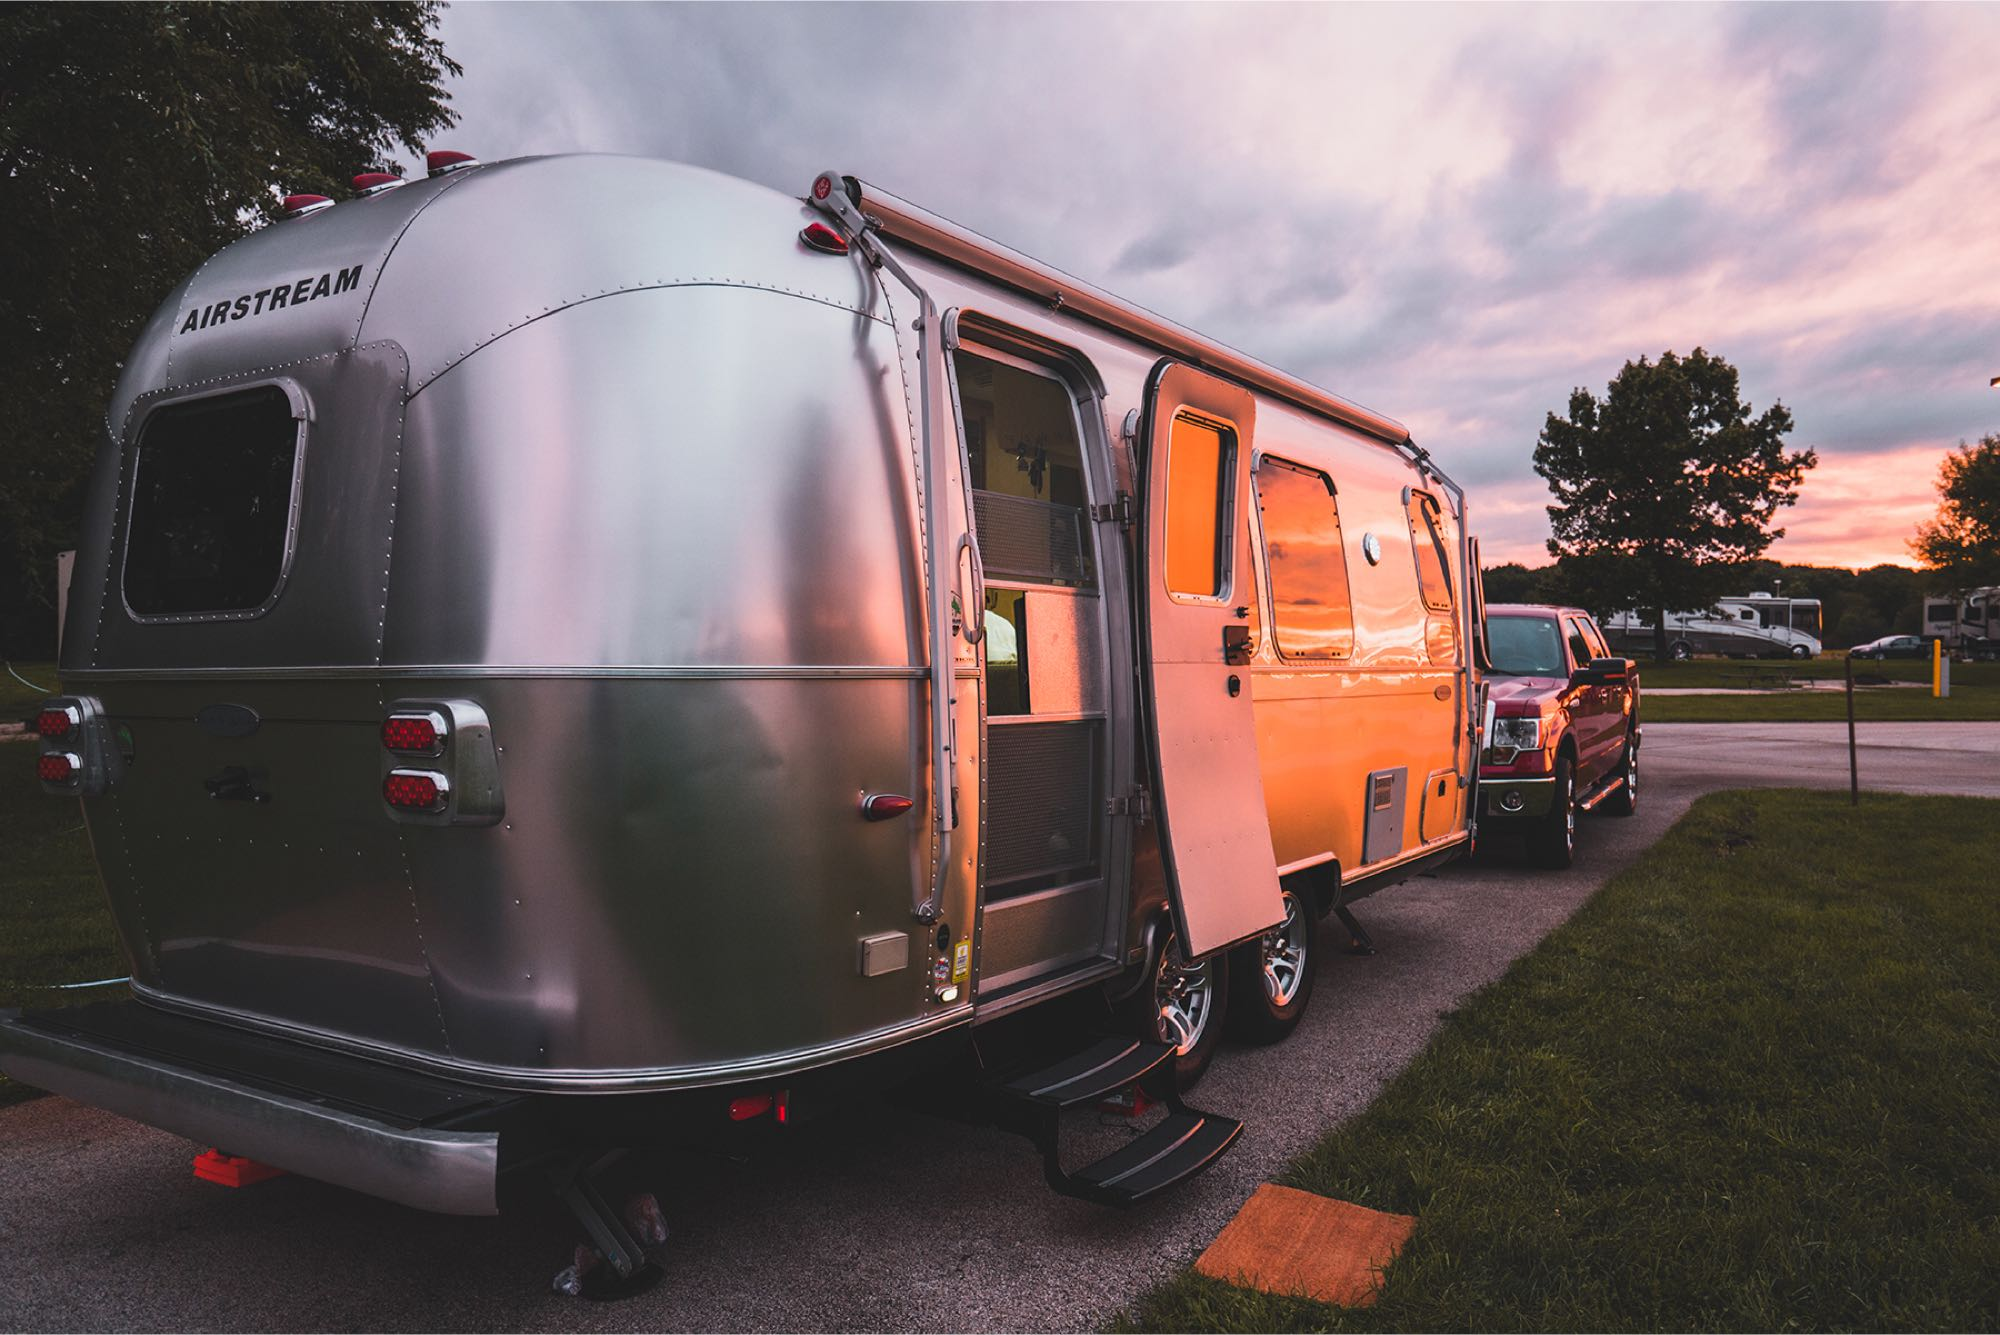 Exterior sunset side. Airstream FlyingCloud 2013